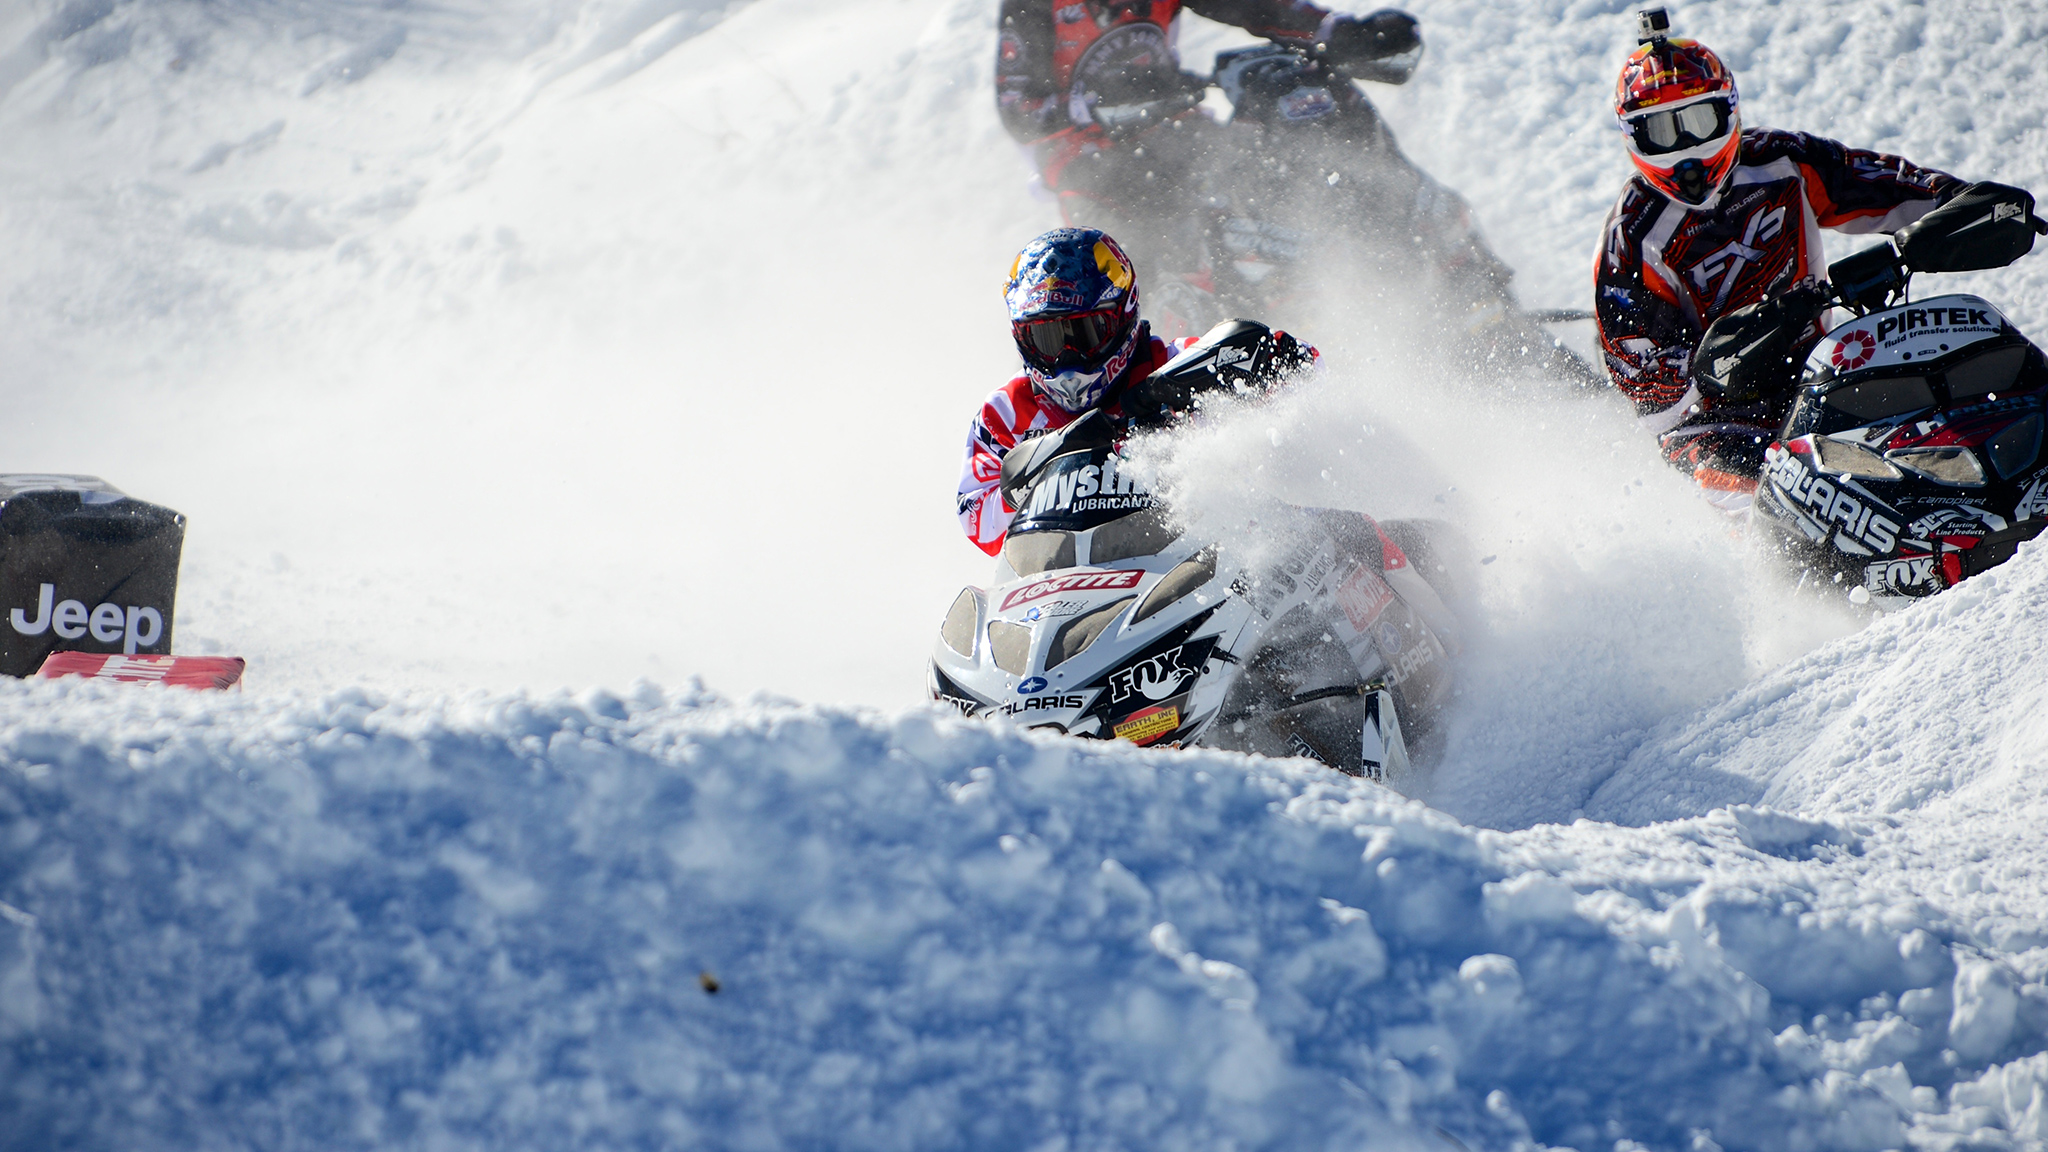 Levi Retires from Snocross